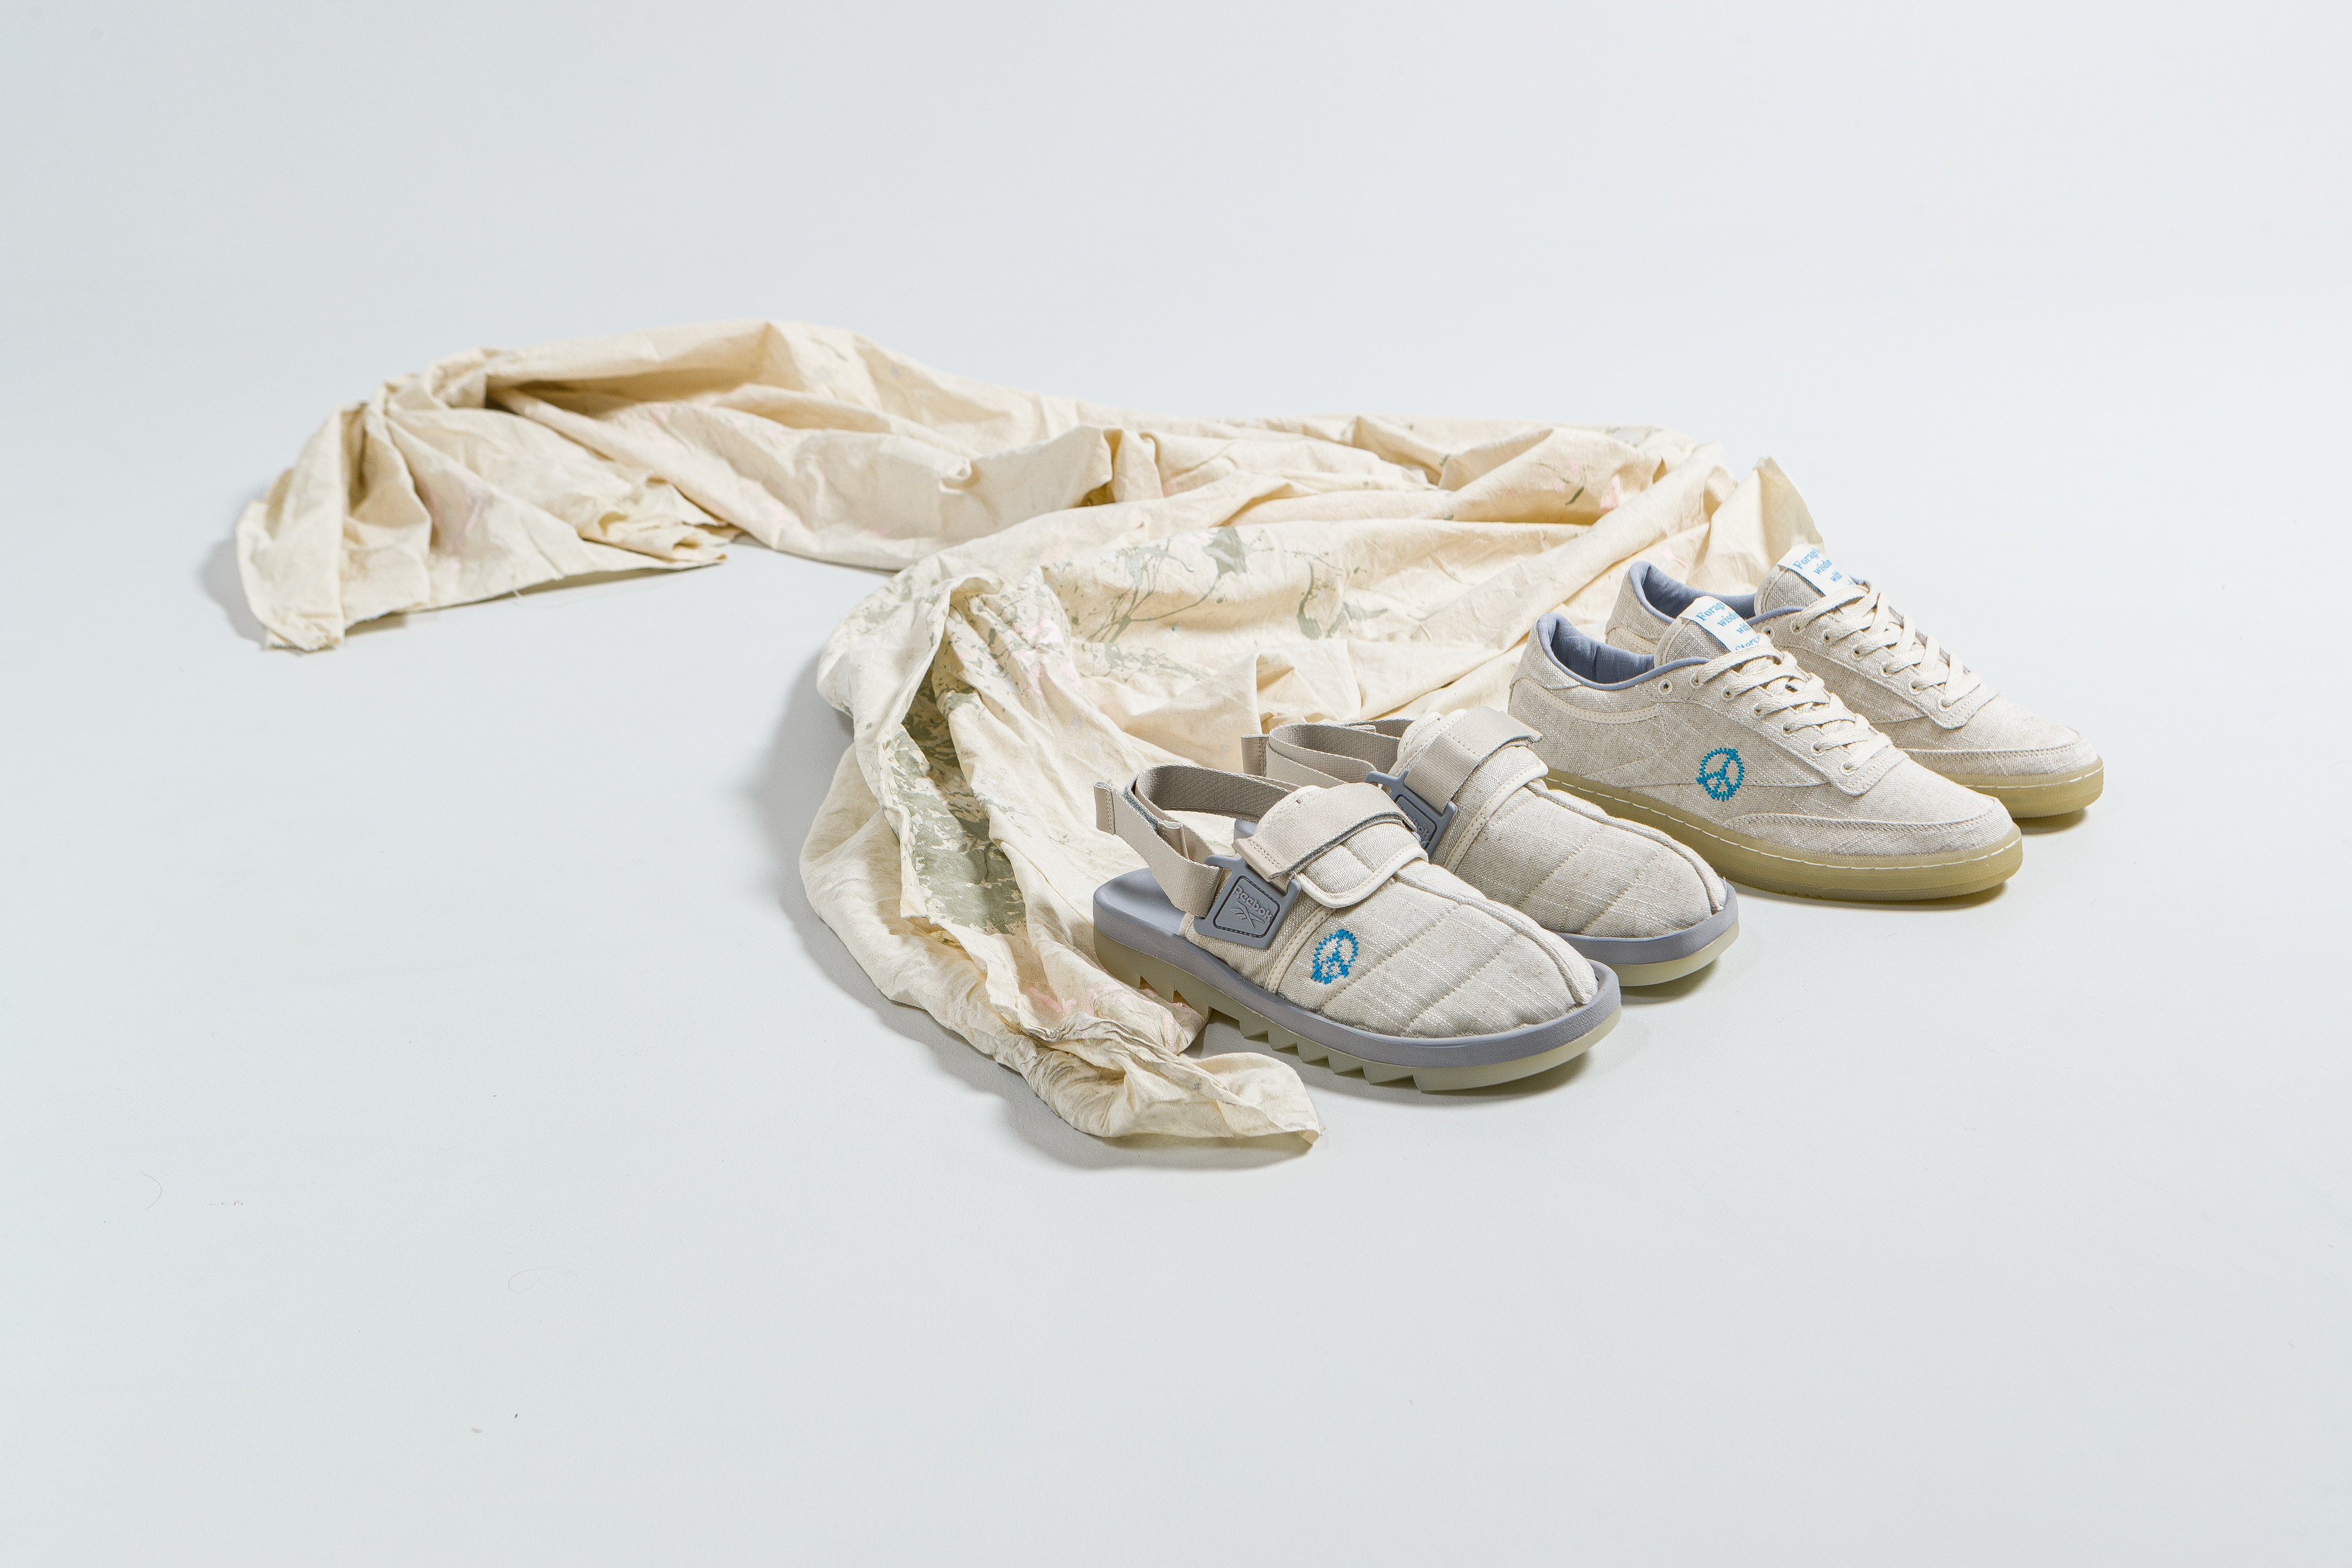 Up There Store - Reebok Classics X Story MFG Beatnik & Club C 85